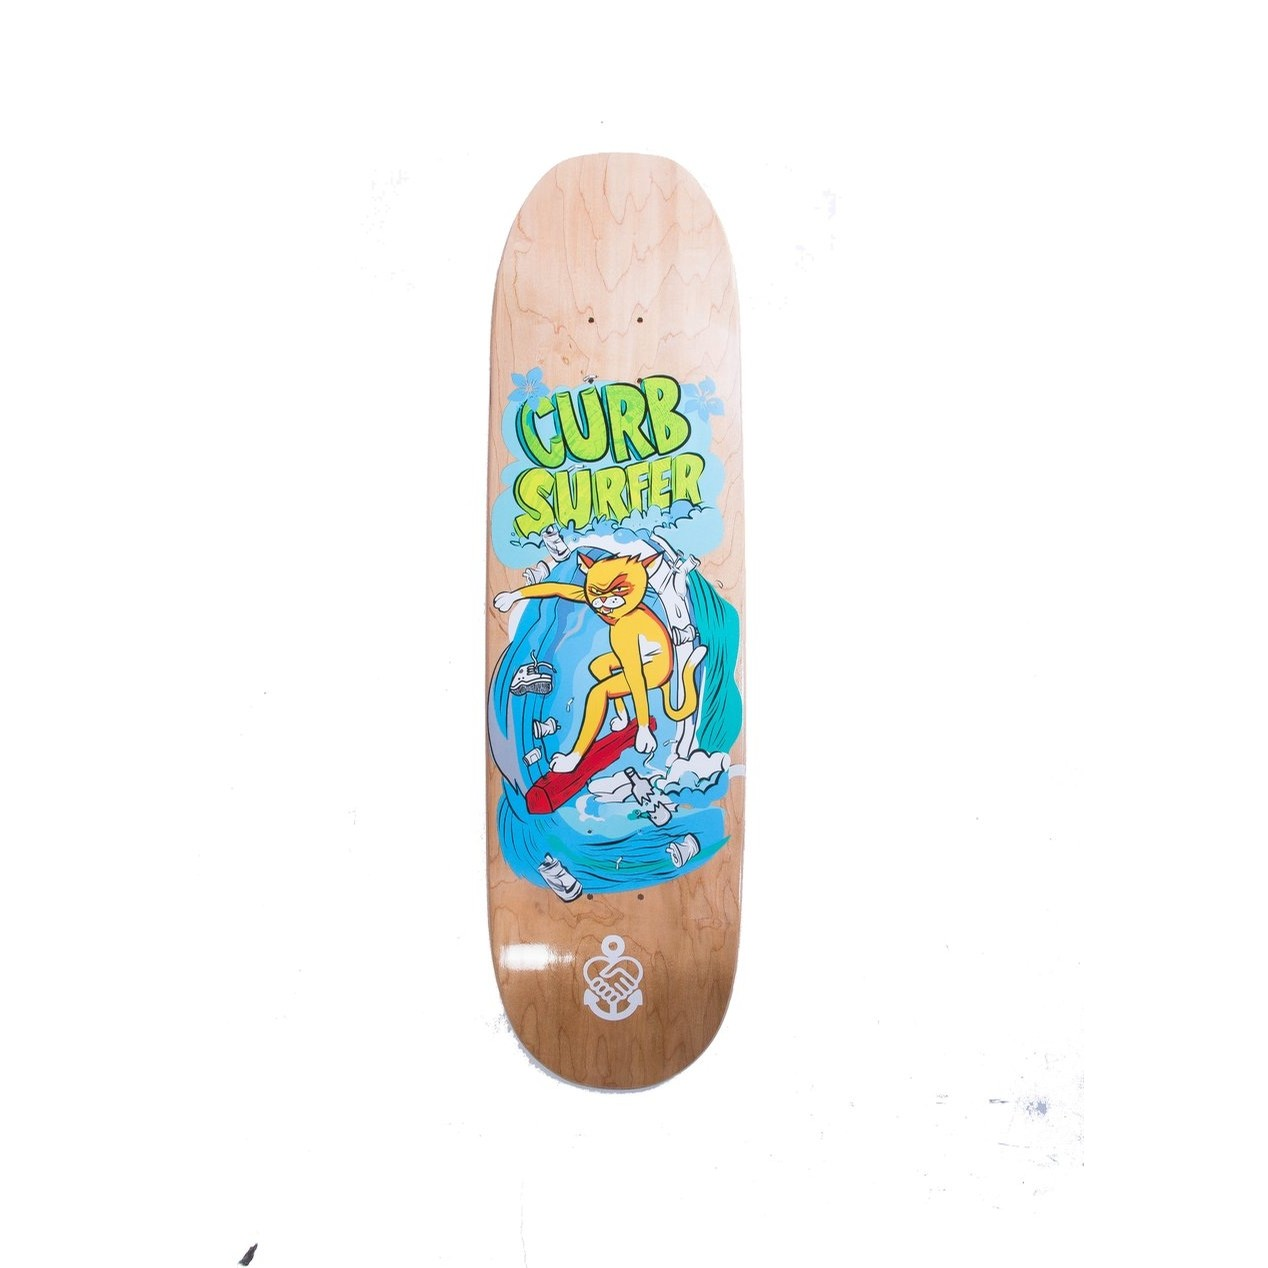 Curb Surfer Deck